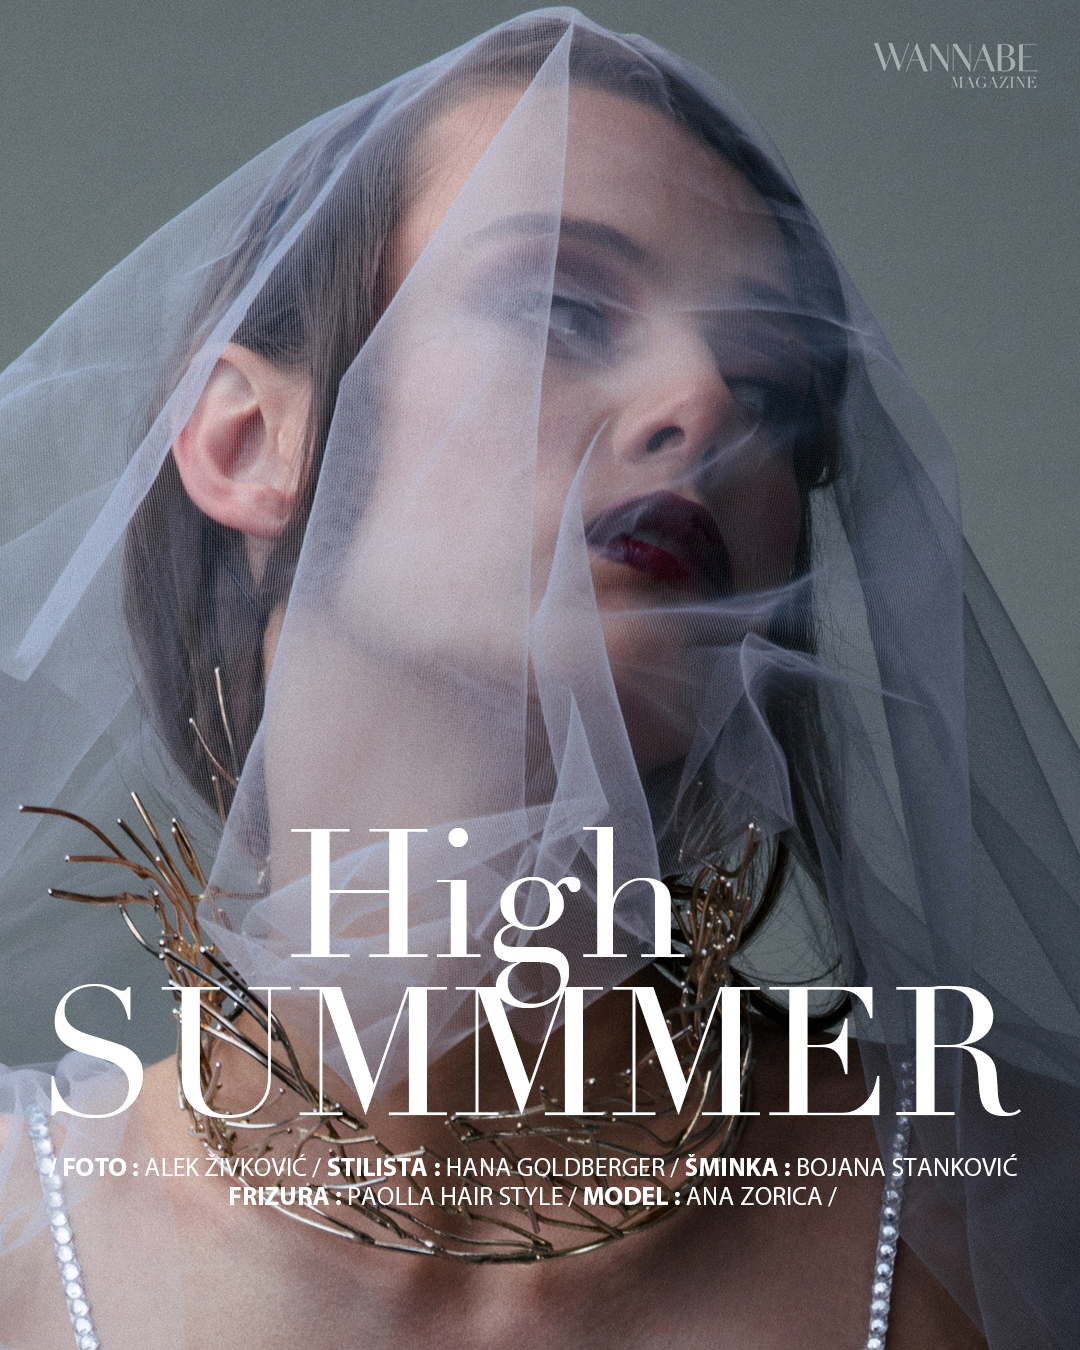 0 WANNABE EDITORIJAL: High Summer